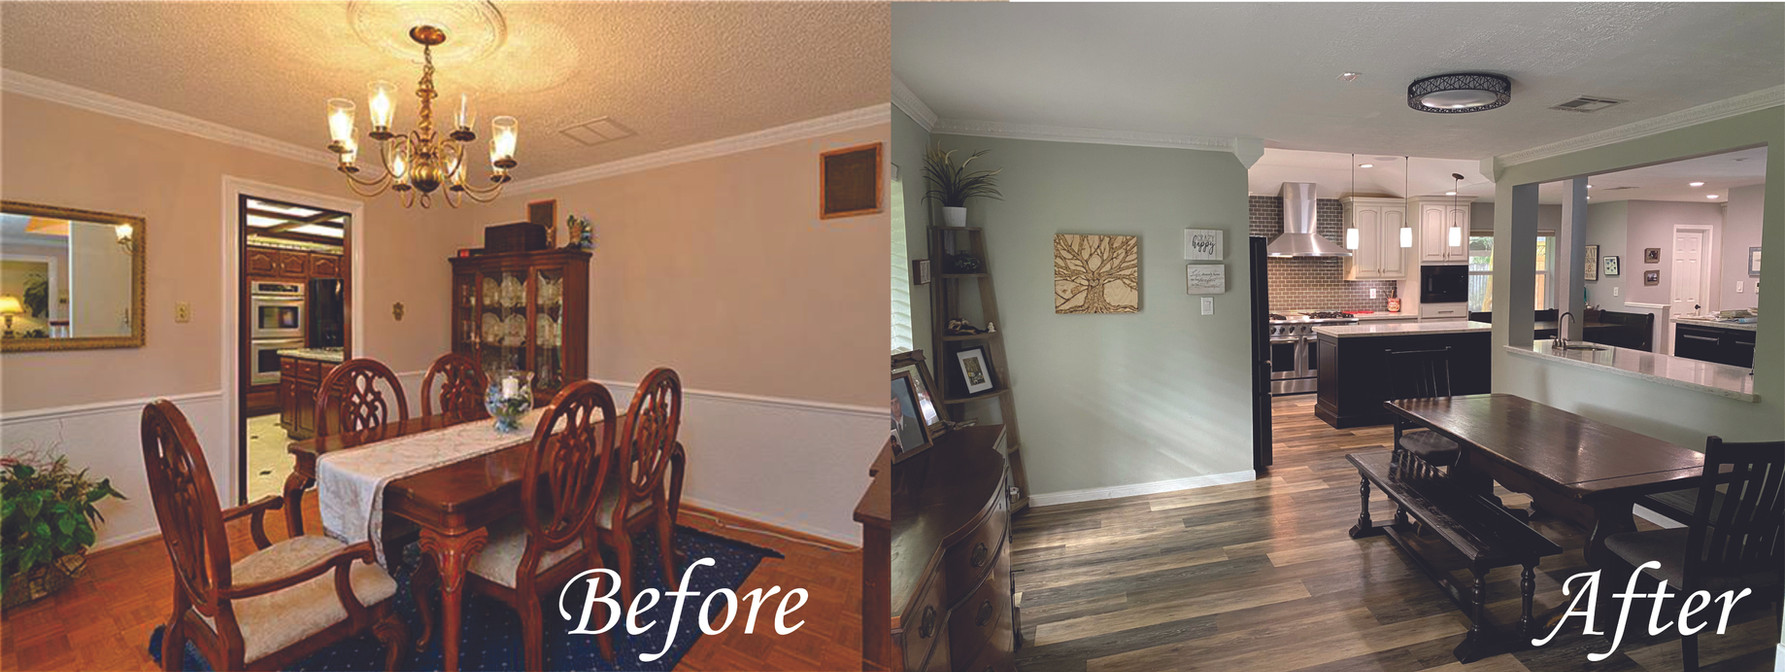 Dinning Room 1 - Before and After